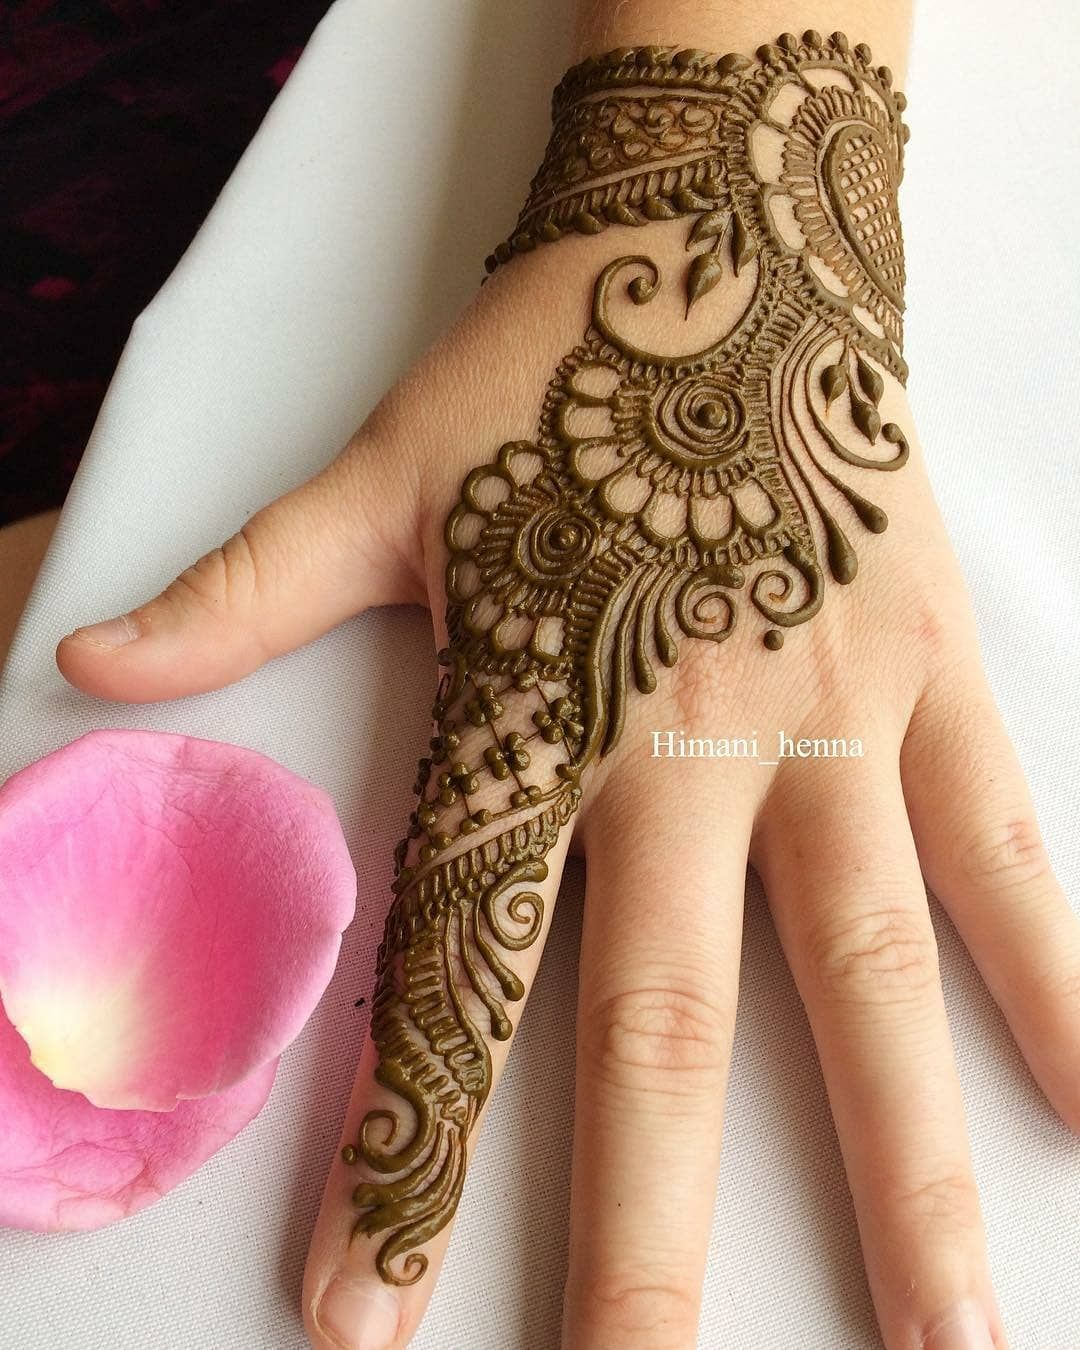 Image May Contain One Or More People And Closeup Mehndi Designs